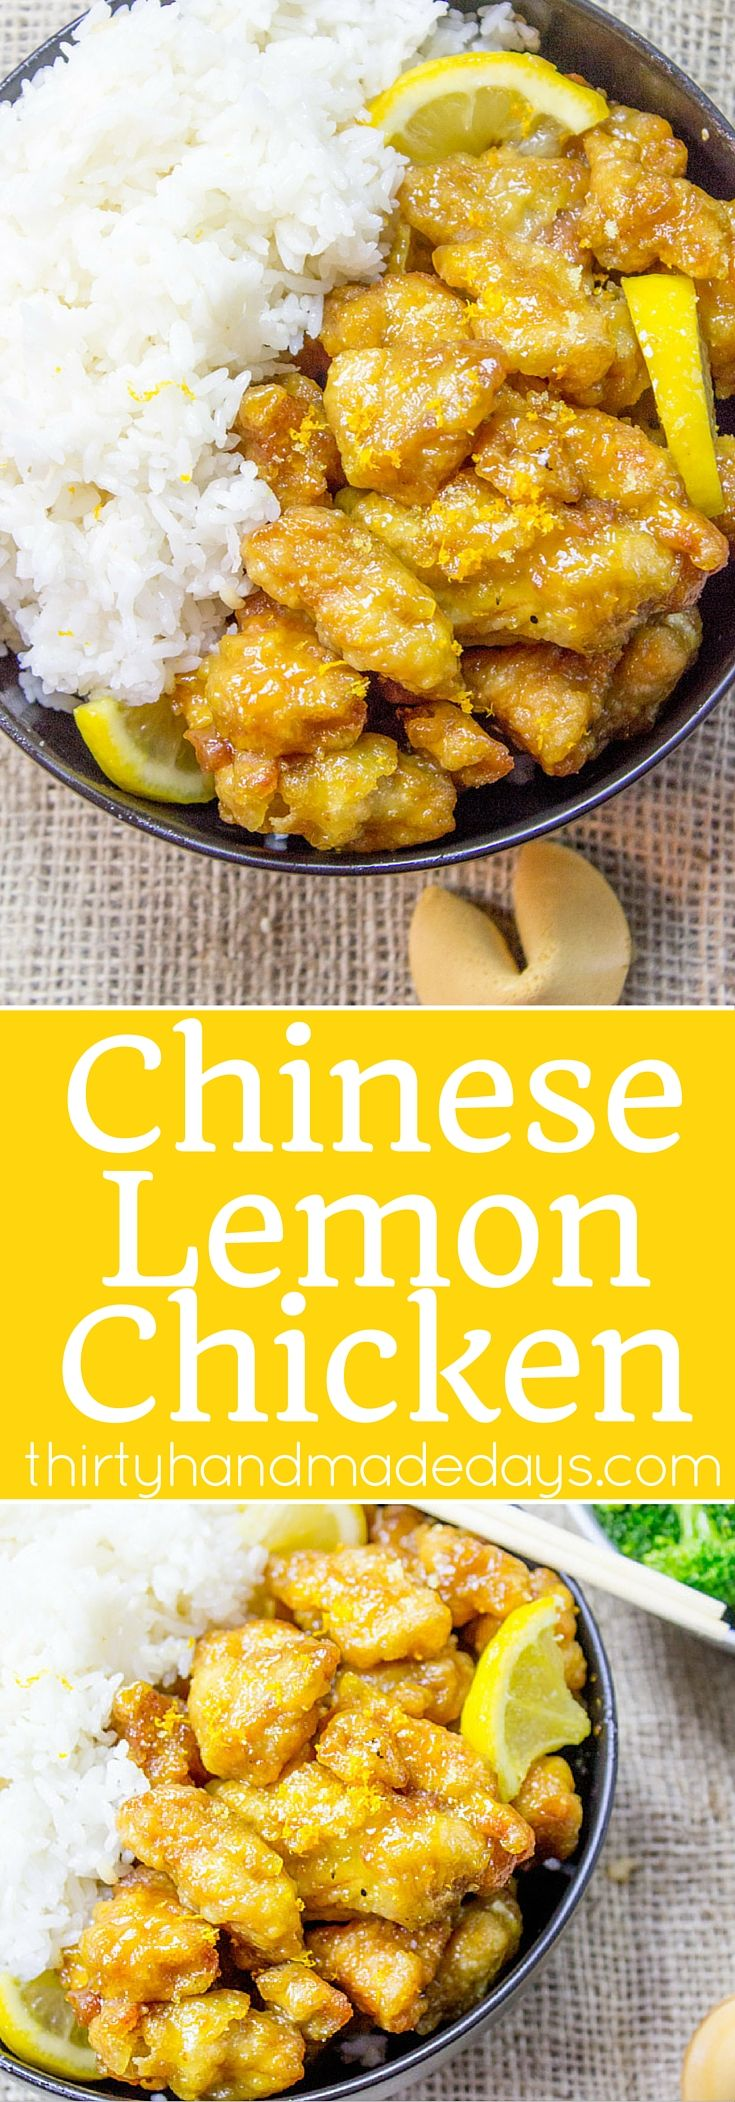 Classic Lemon Chicken with crispy battered chicken thighs in a sweet and tangy sauce. You can skip the delivery and the wait and